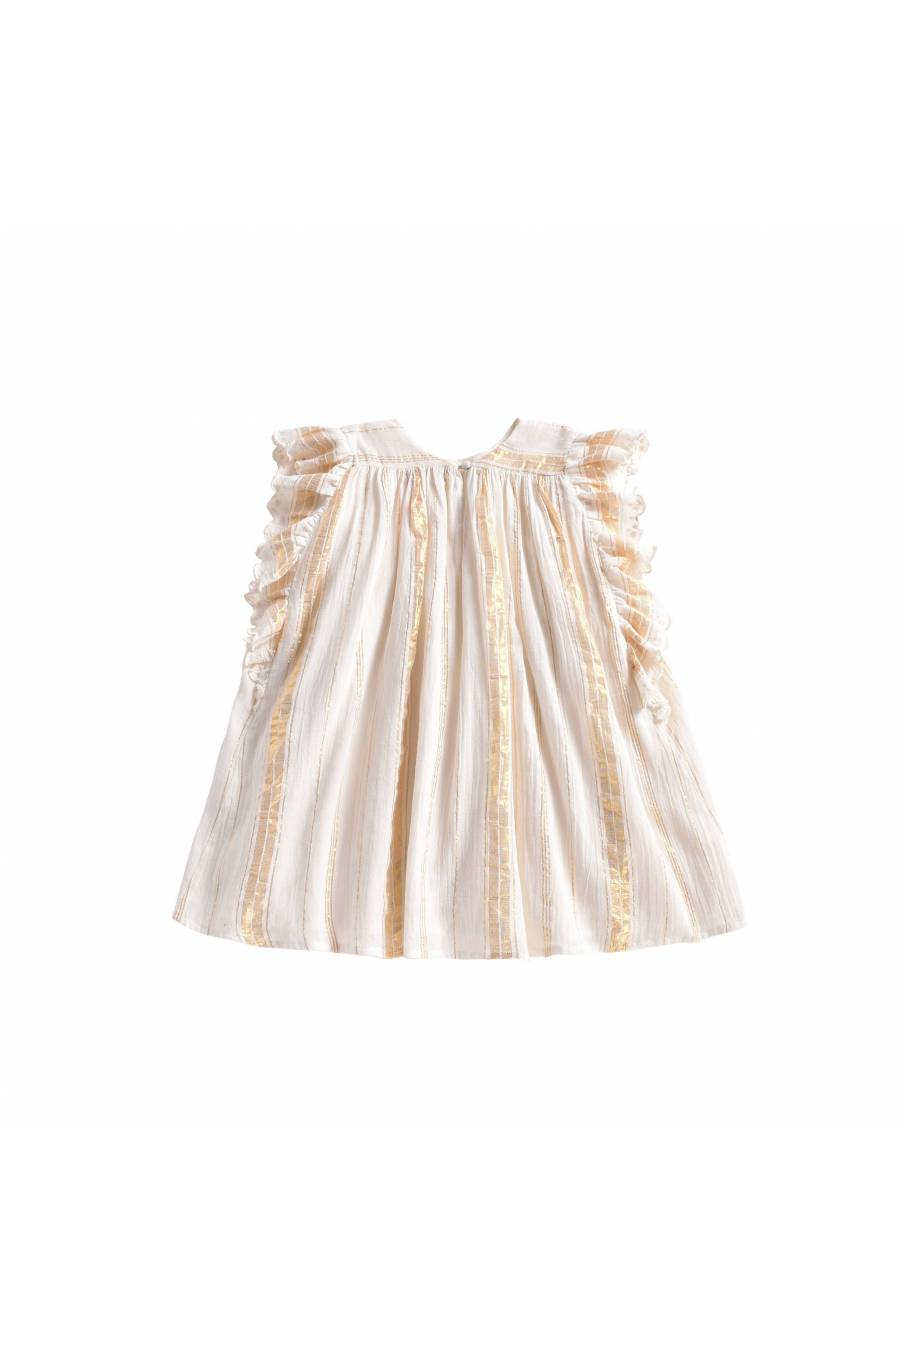 Dress Lyka White & Gold Stripes